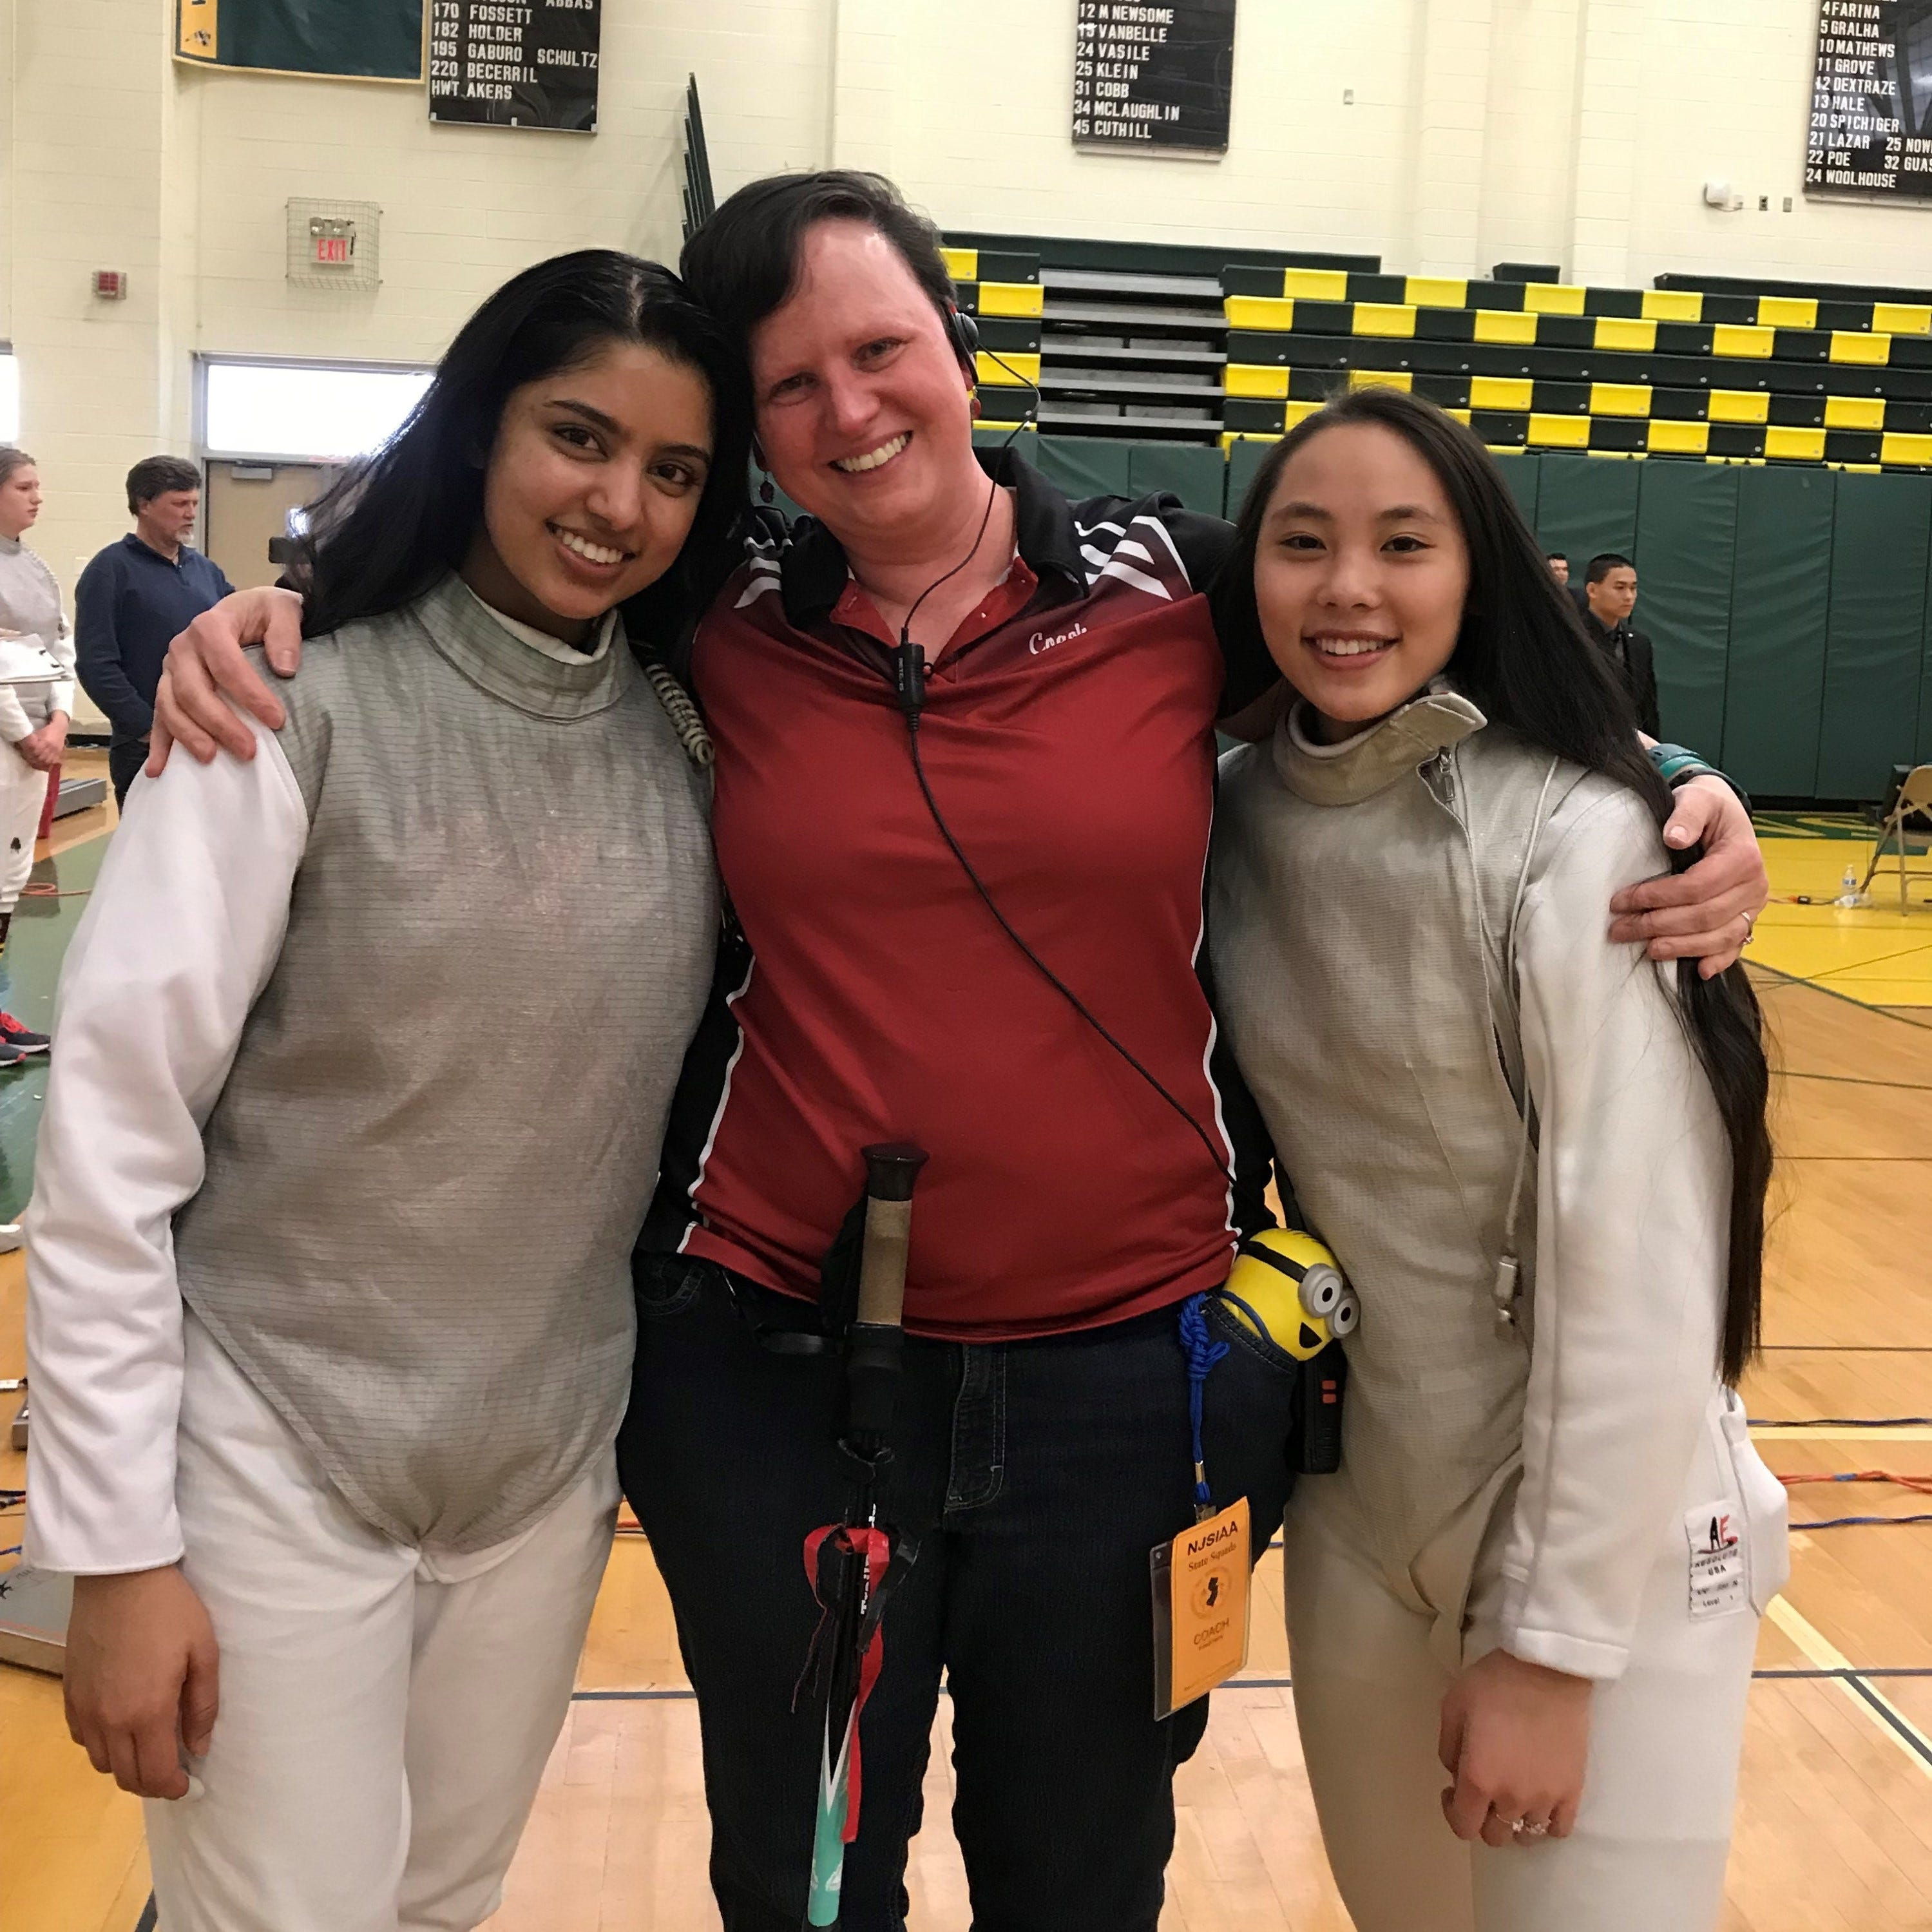 Morris Hills fencing coach recognized by National Federation of State High School Associations